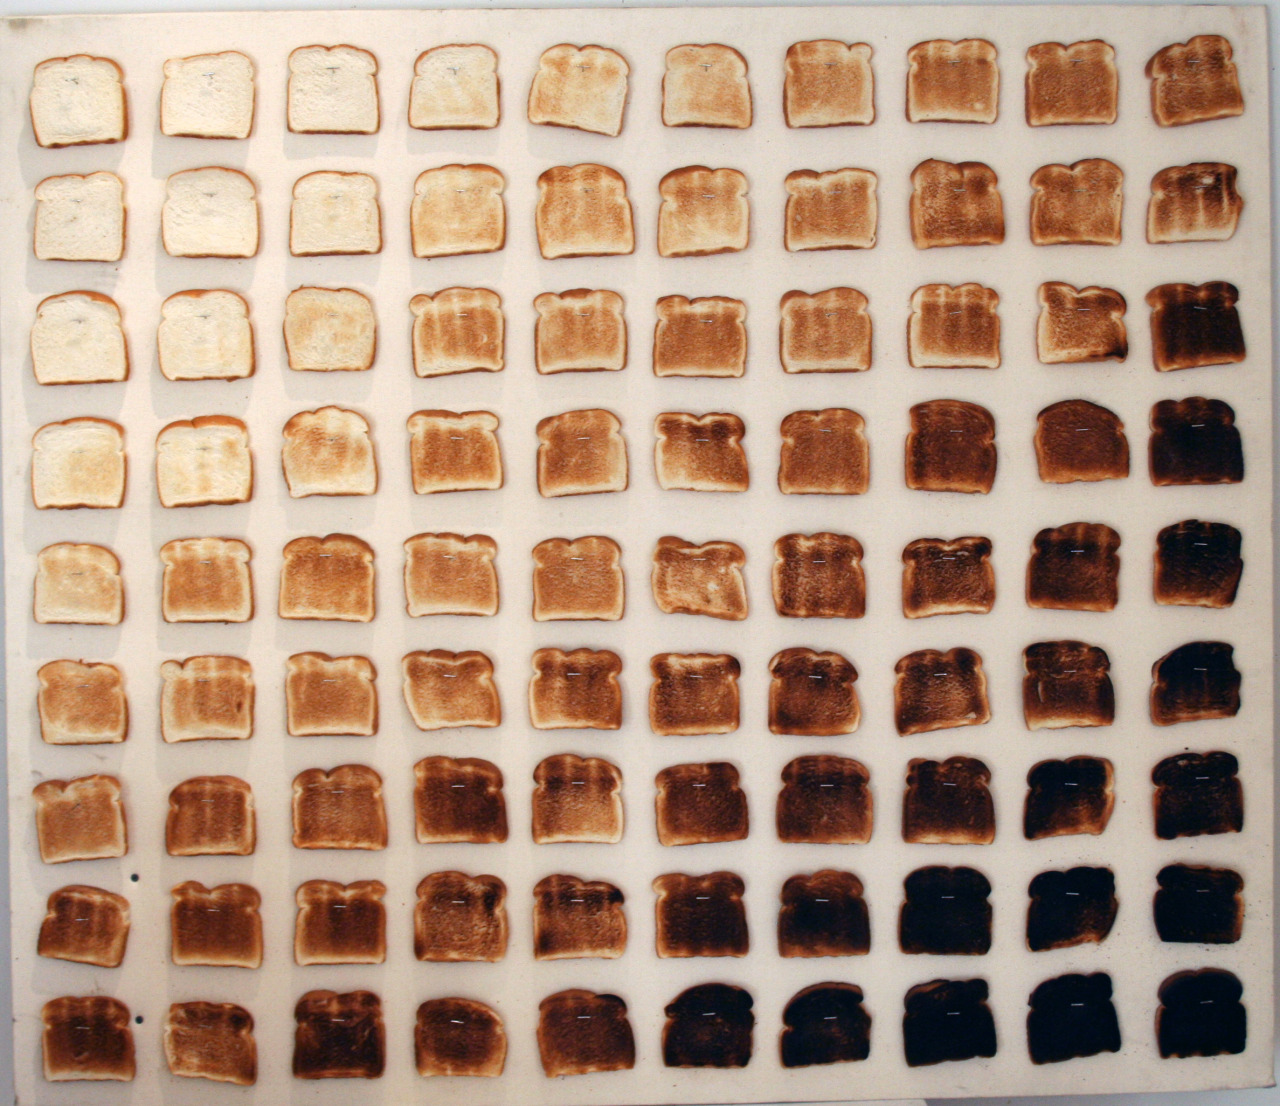 invitus-verum:  Yay, 90 shades of toast!!!